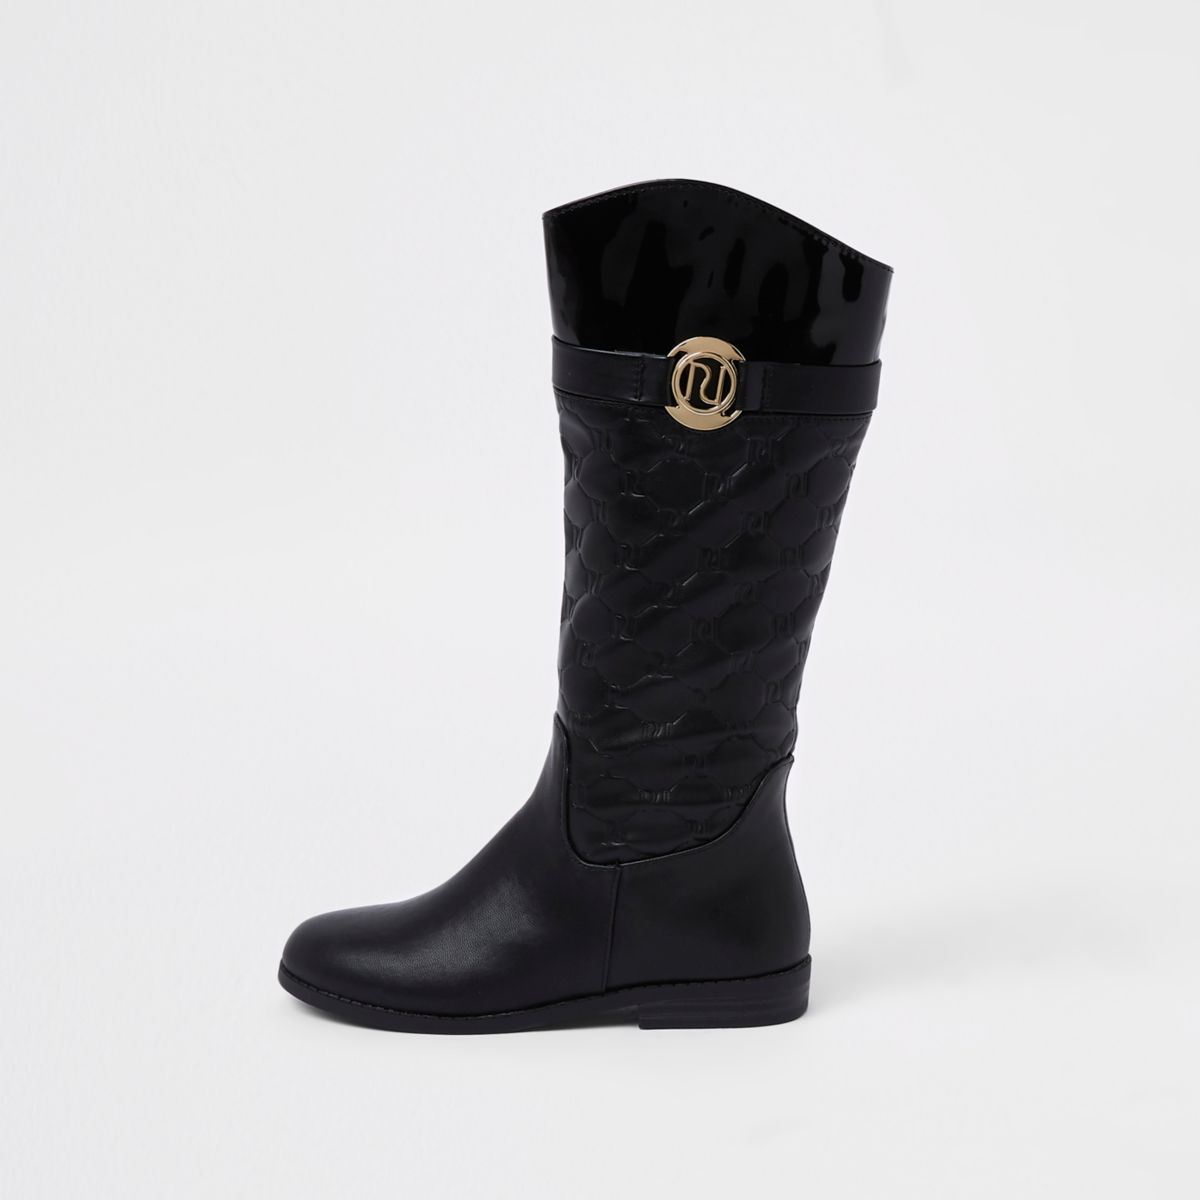 Girls black RI monogram knee high boot